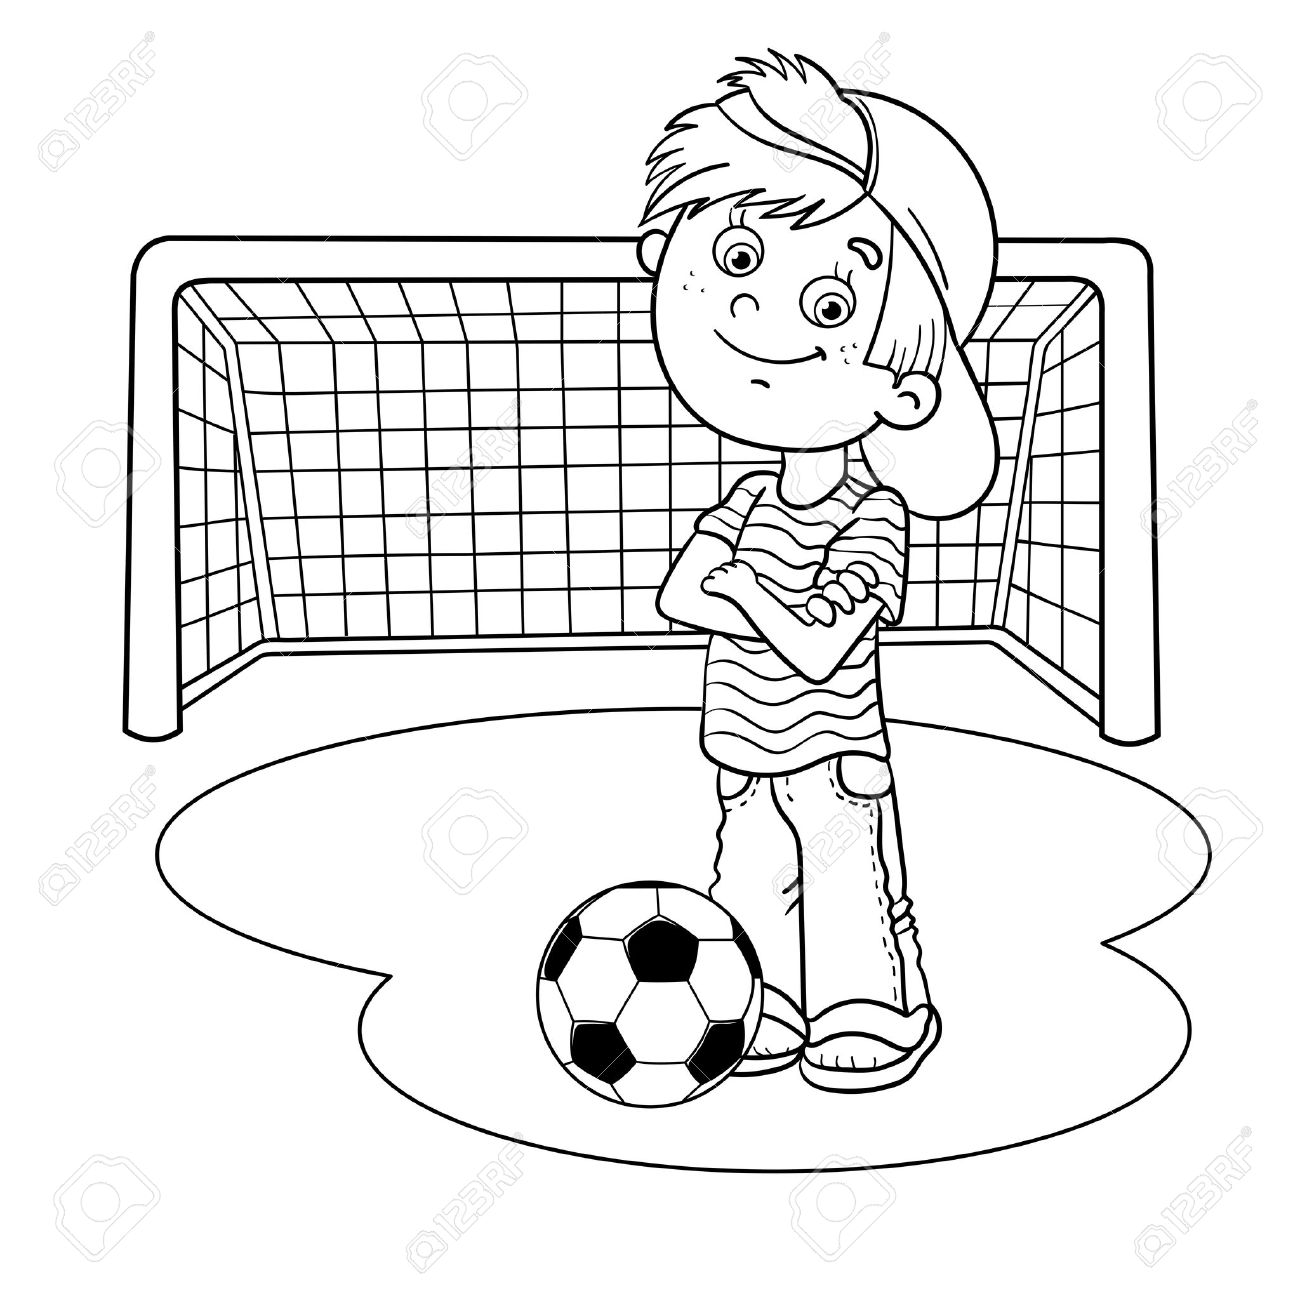 1300x1300 coloring page outline of a cartoon boy with a soccer ball and